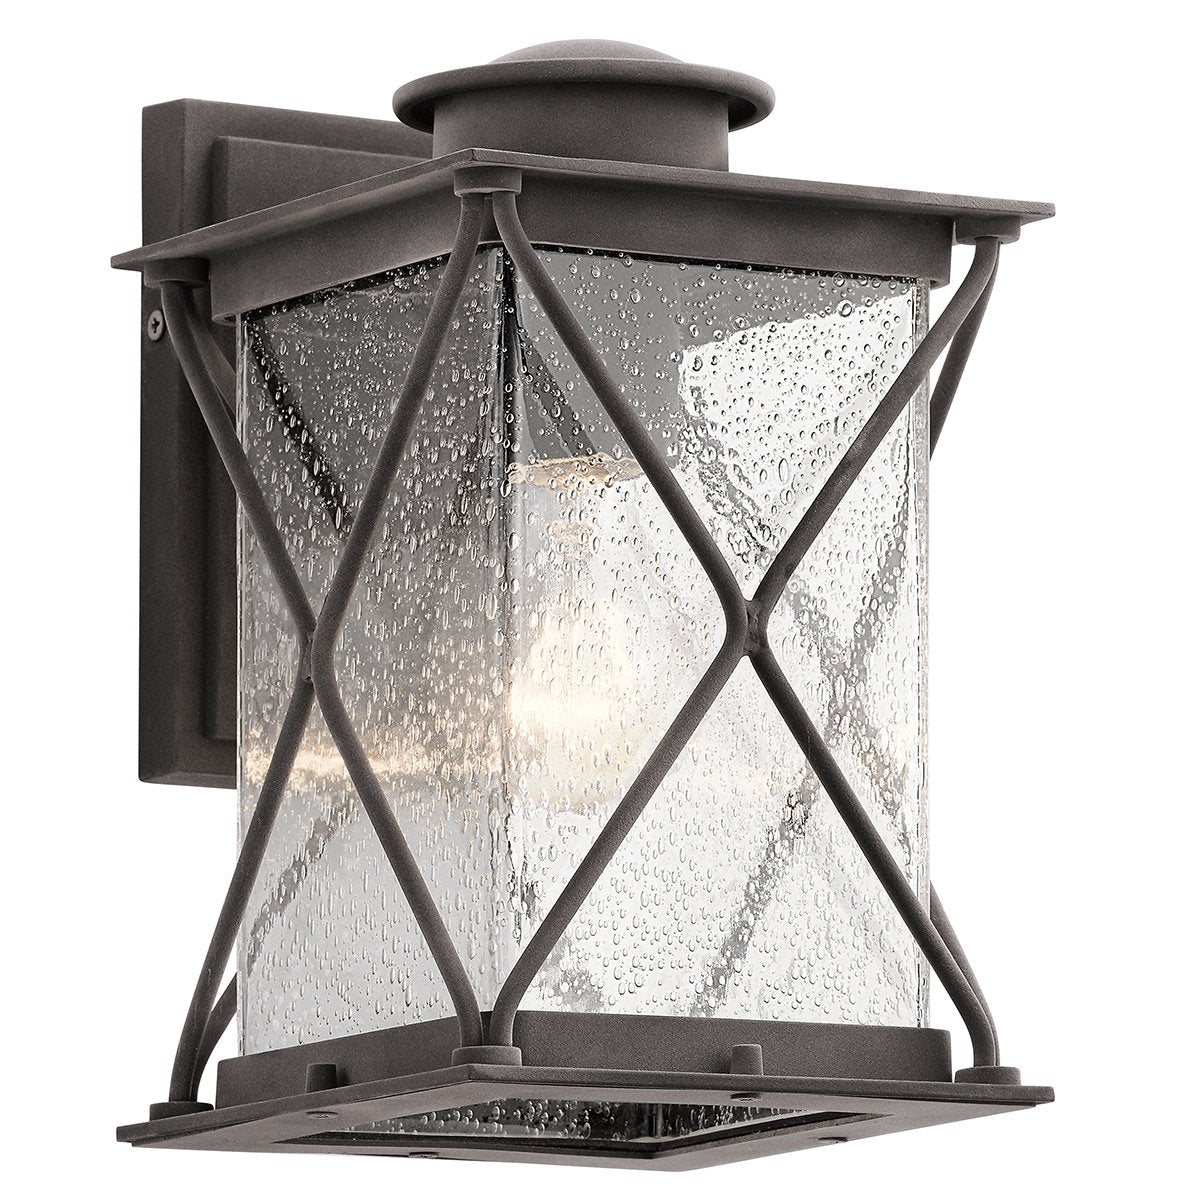 Rosemarkie Textured Weathered Zink Small Outdoor Wall Light - 9857